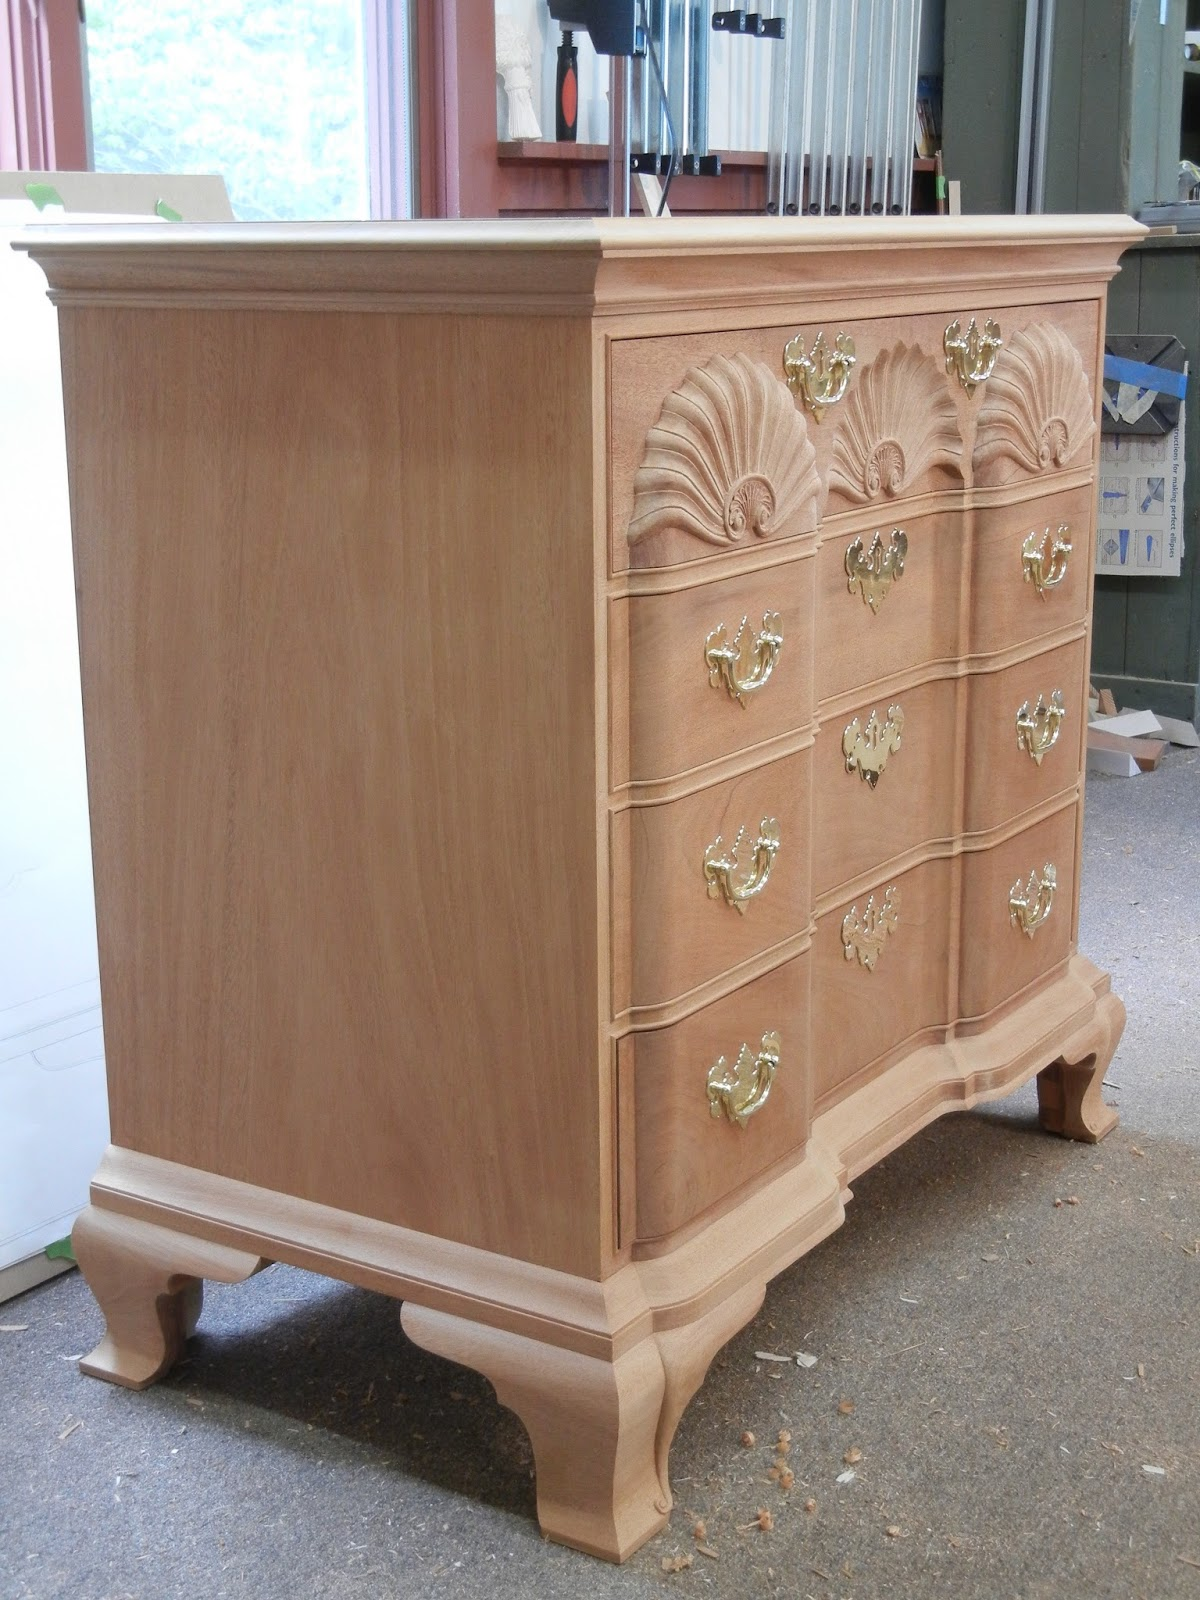 Townsend Goddard Reproduction Furniture